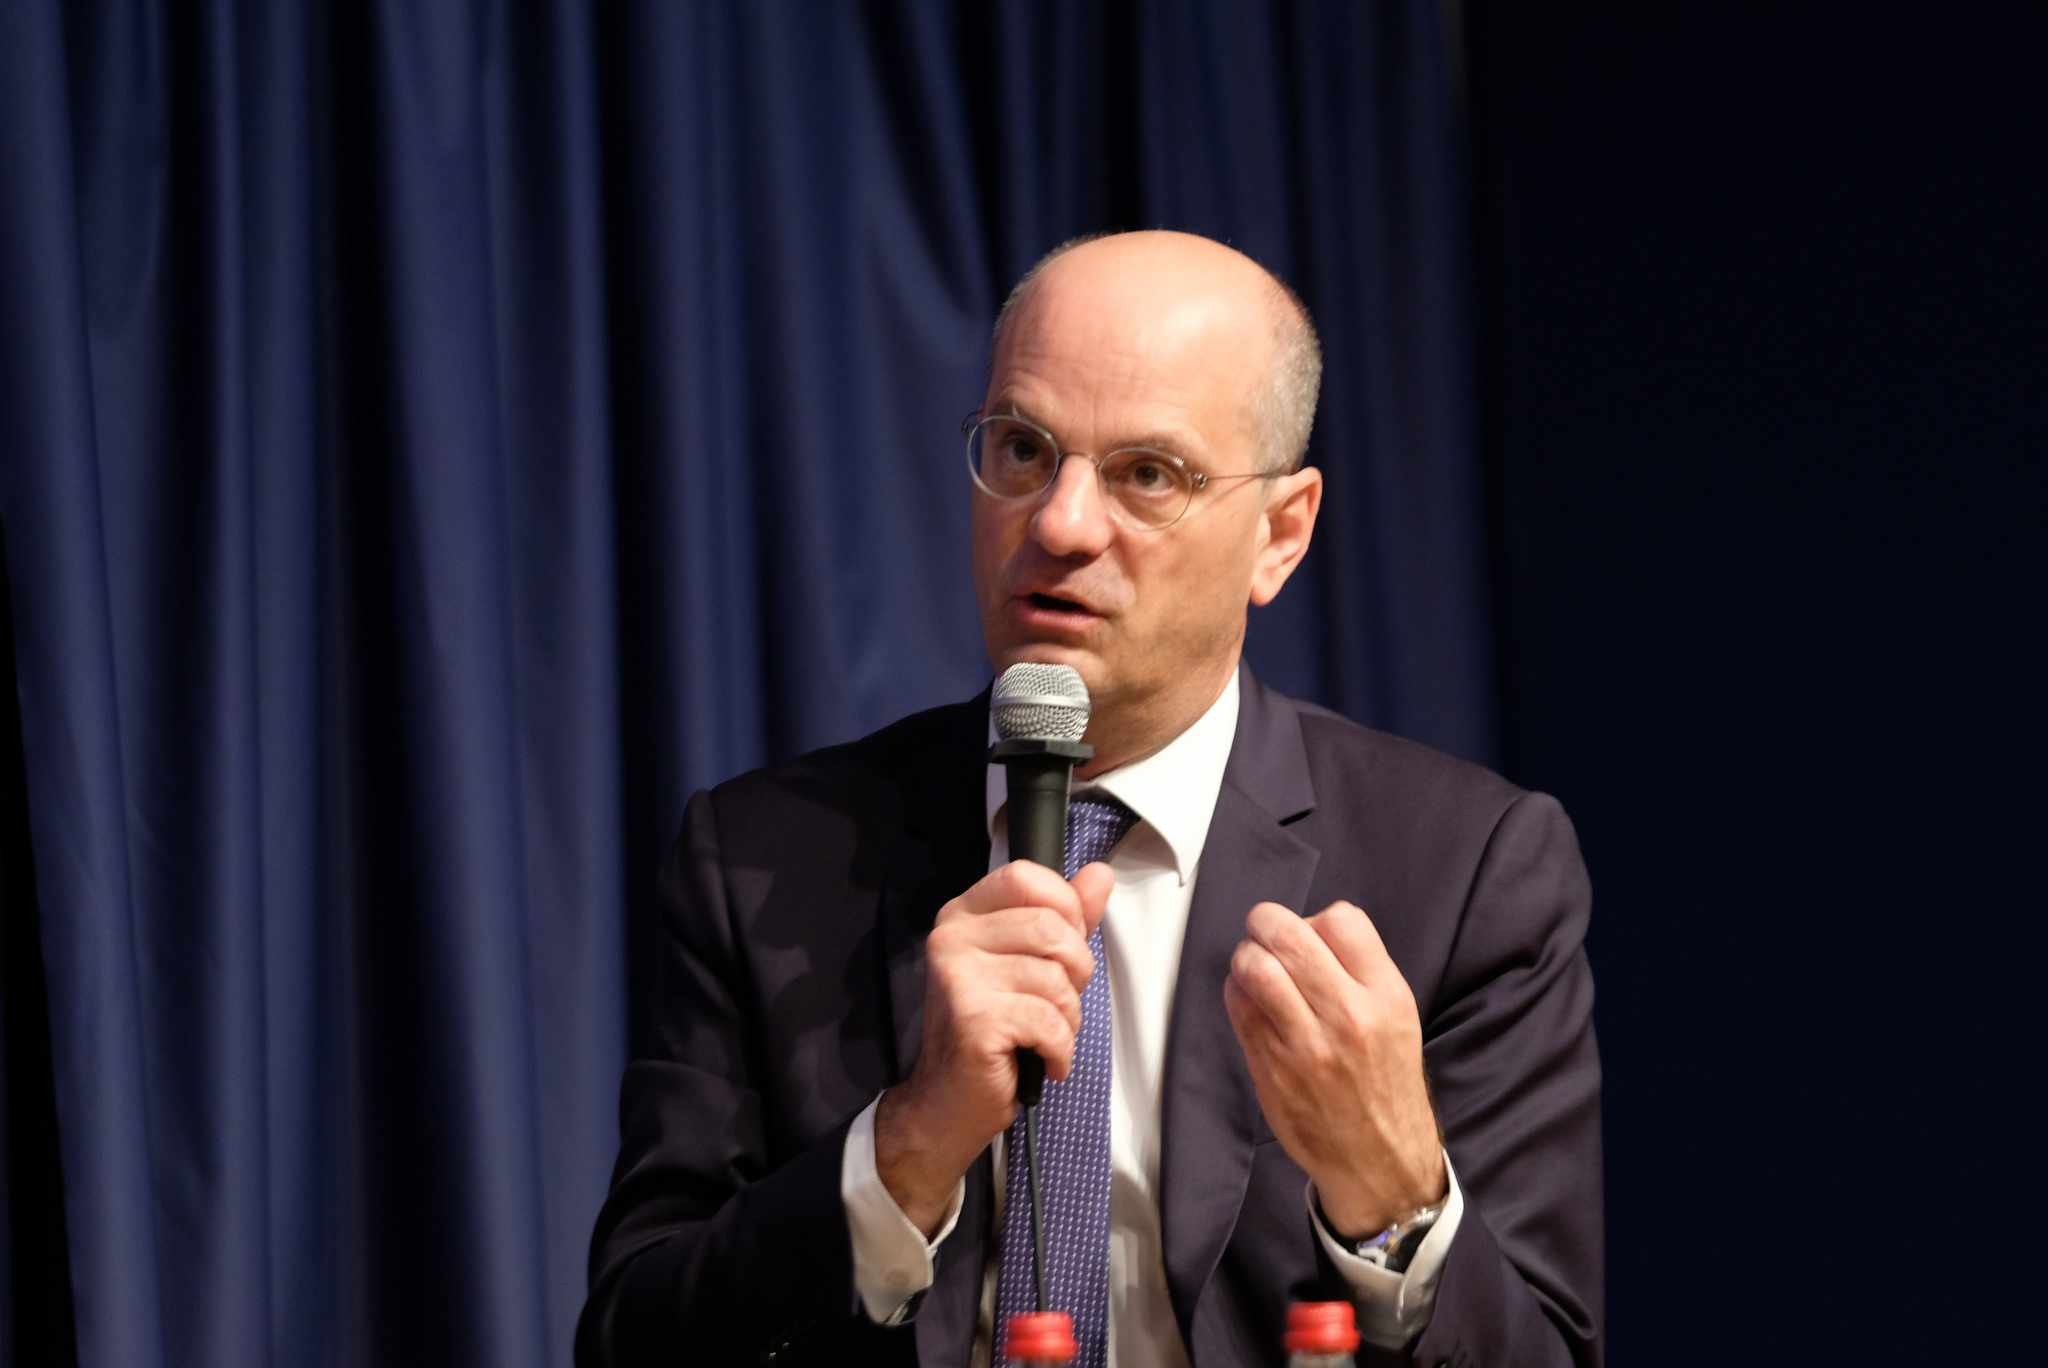 Jean-Michel Blanquer, French Minister for Education